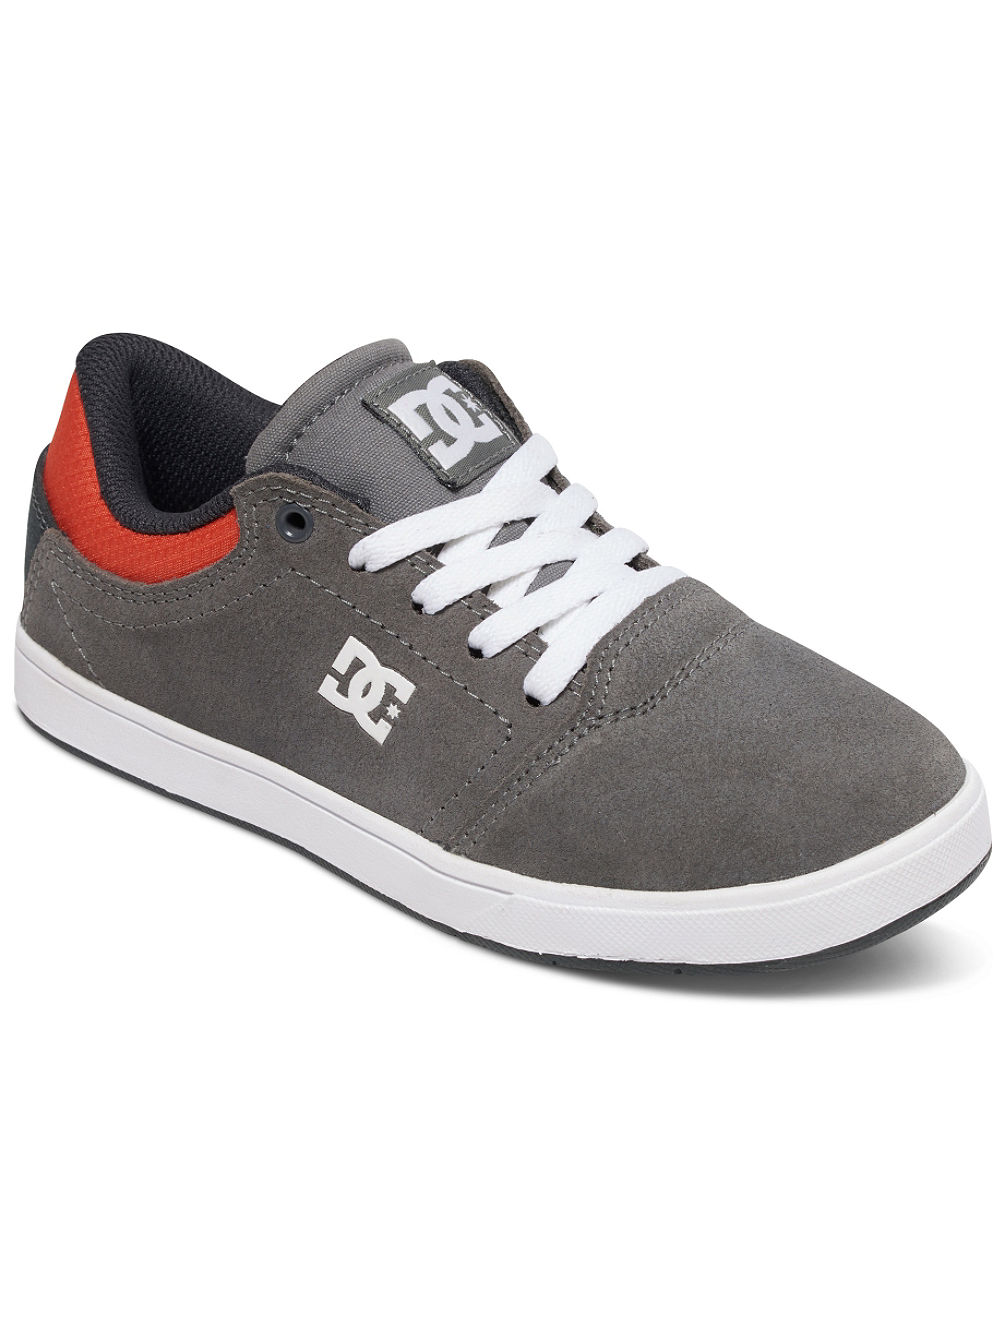 Shop for Boy's Athletic Shoes and other kid's athletic apparel and sports equipment at cuttackfirstboutique.cf today. Find free shipping on select items.